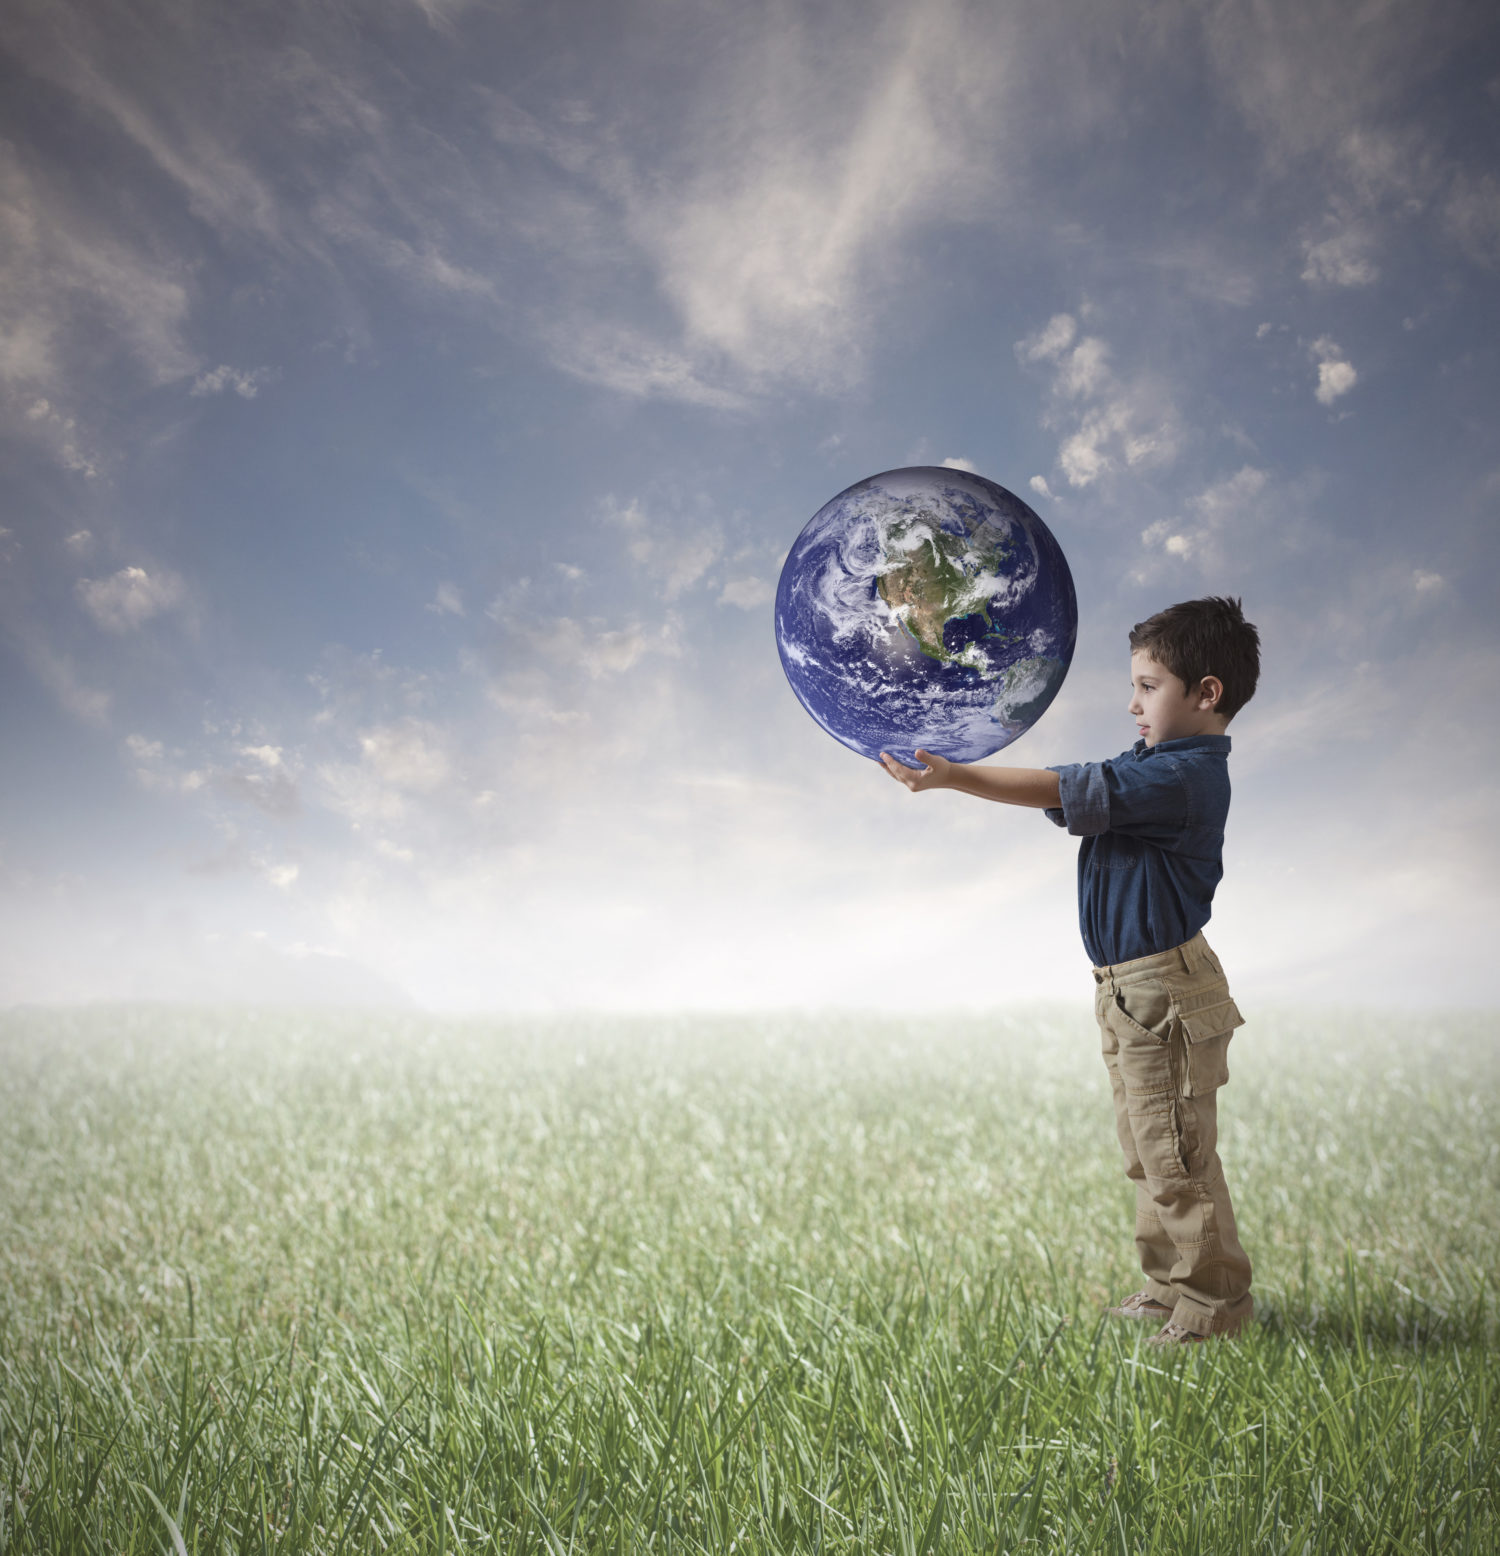 Standing boy holding earth imagining the world full of compassion and wisdom